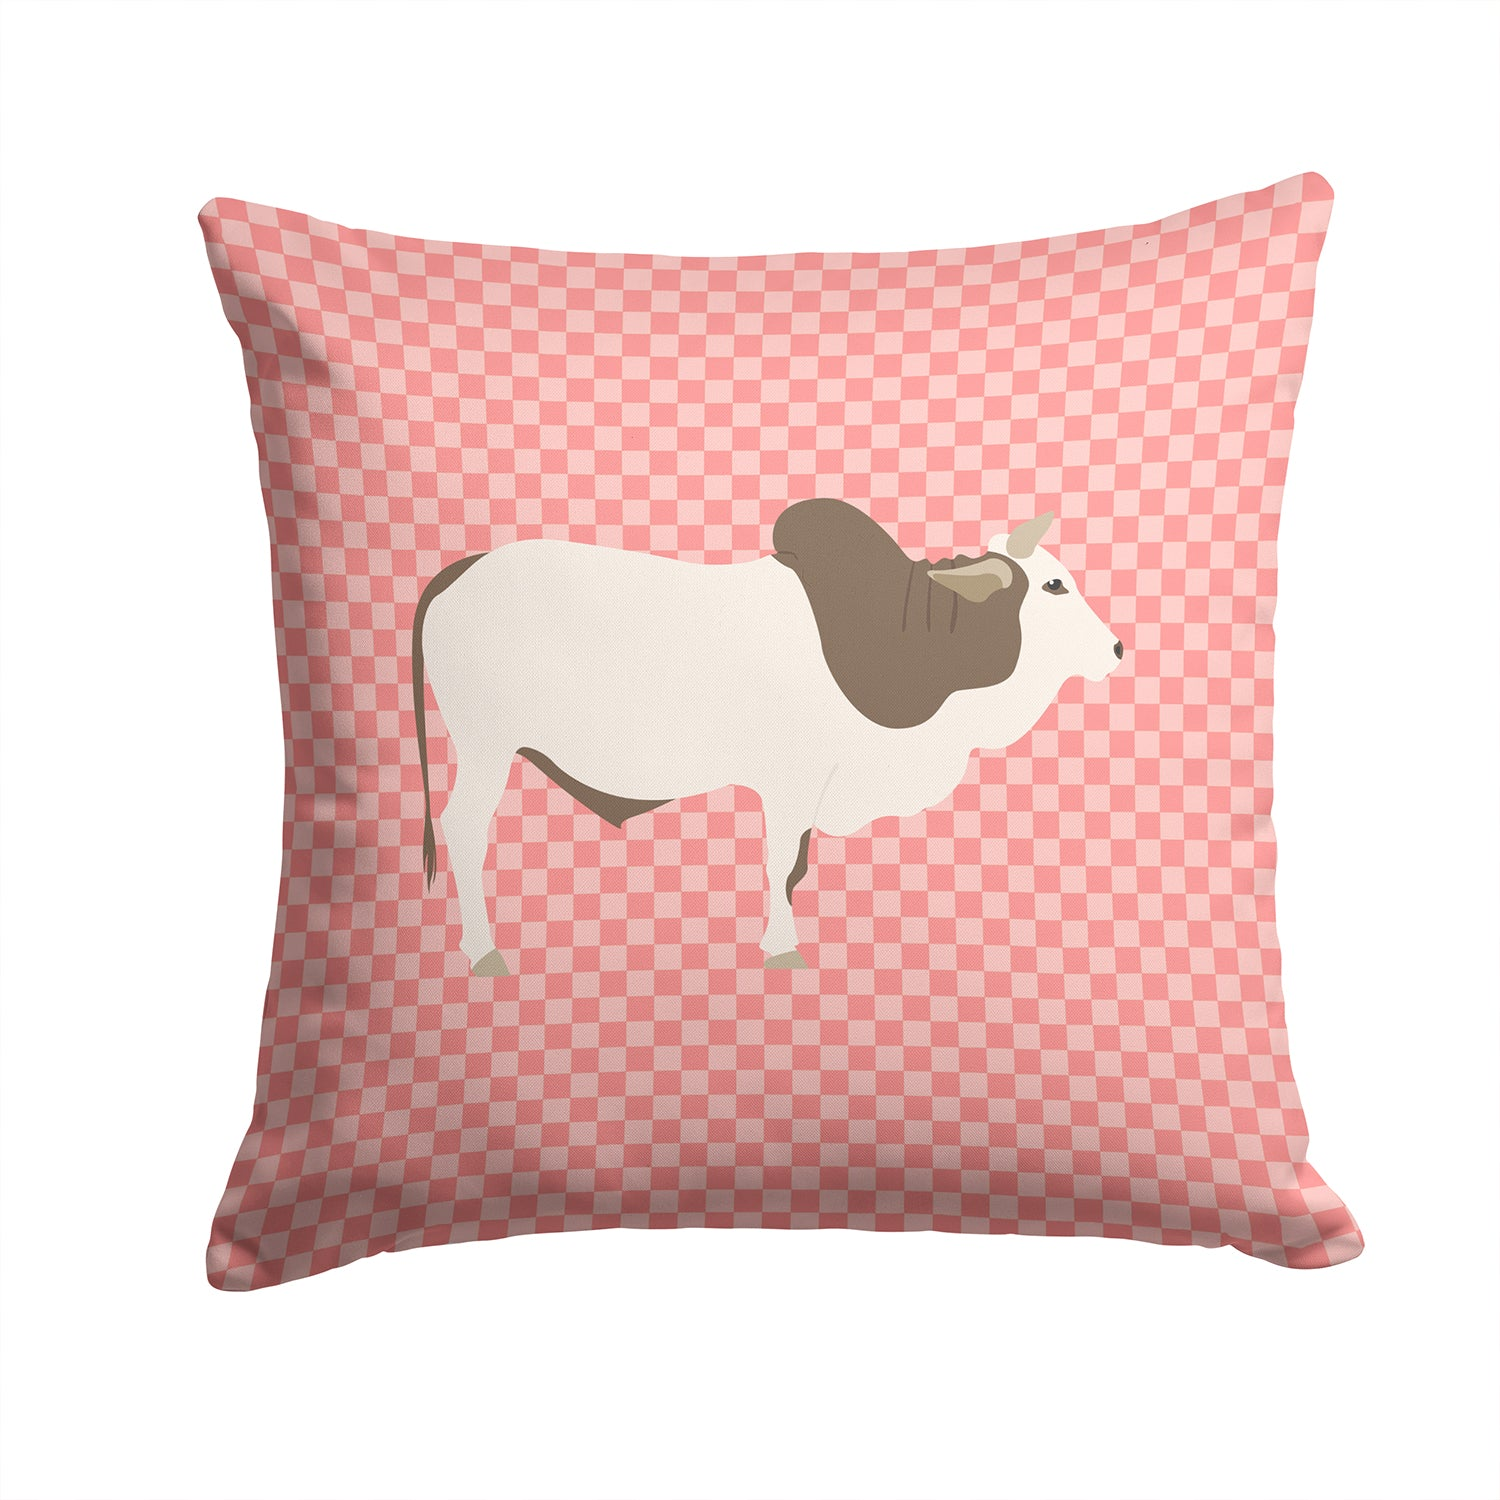 Malvi Cow Pink Check Fabric Decorative Pillow BB7830PW1414 by Caroline's Treasures